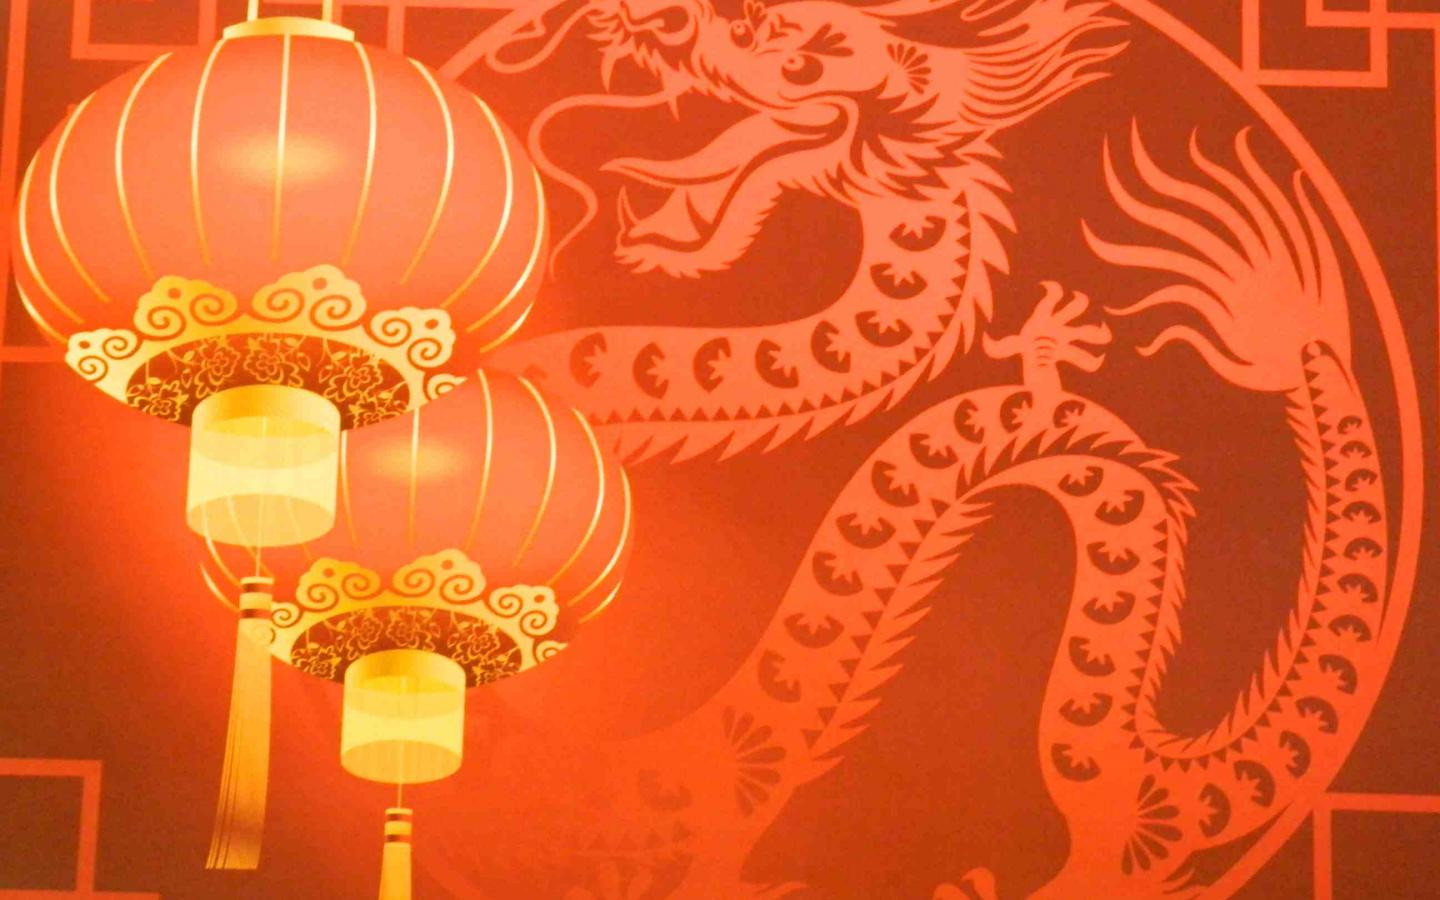 Chinese New Year Card Design with Lantern and Dragon 1440x900